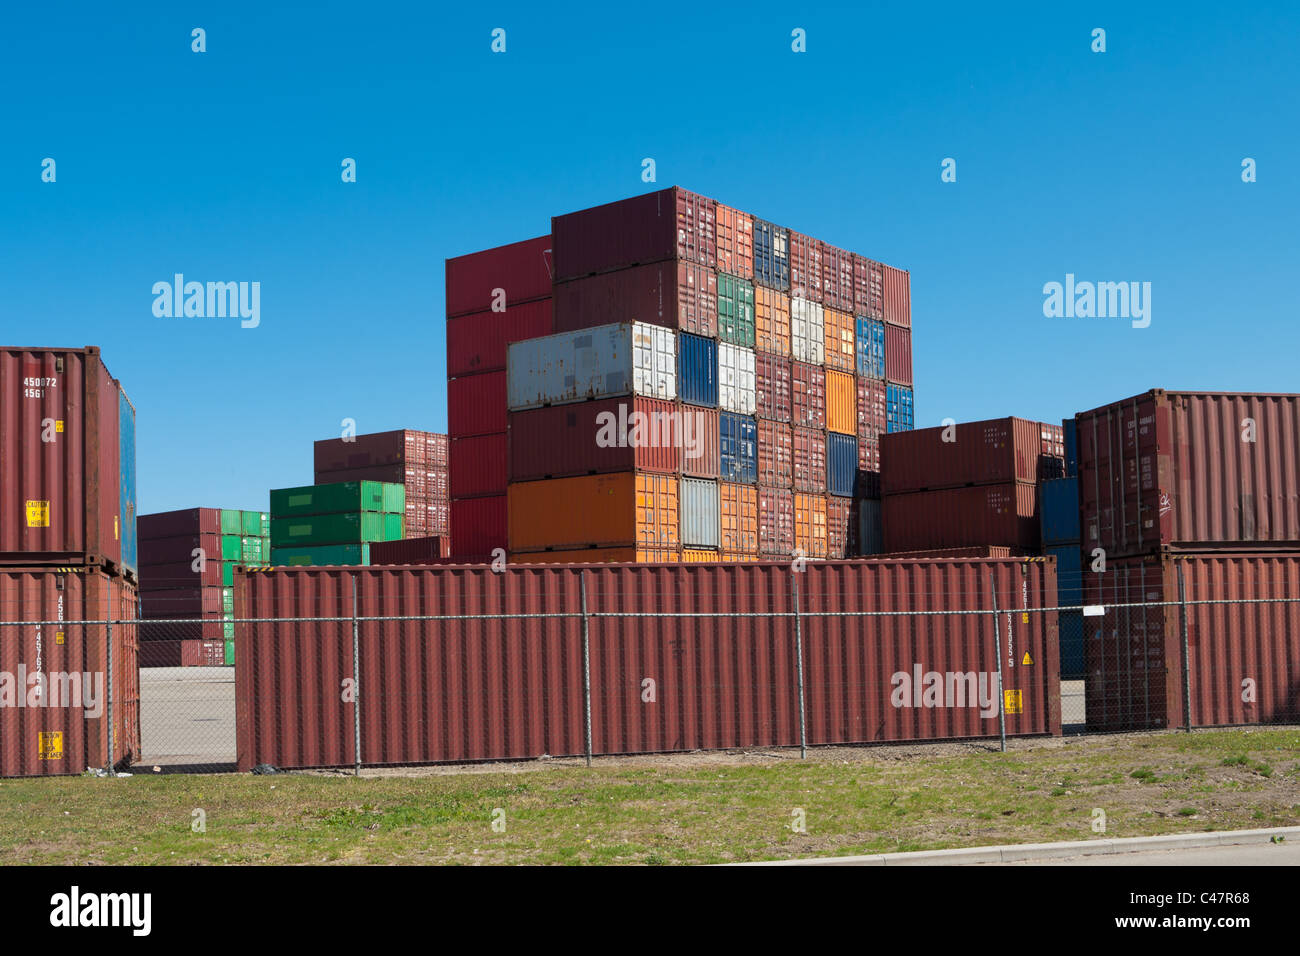 sea containers piled up on a large industrial area in the port of Rotterdam - Stock Image